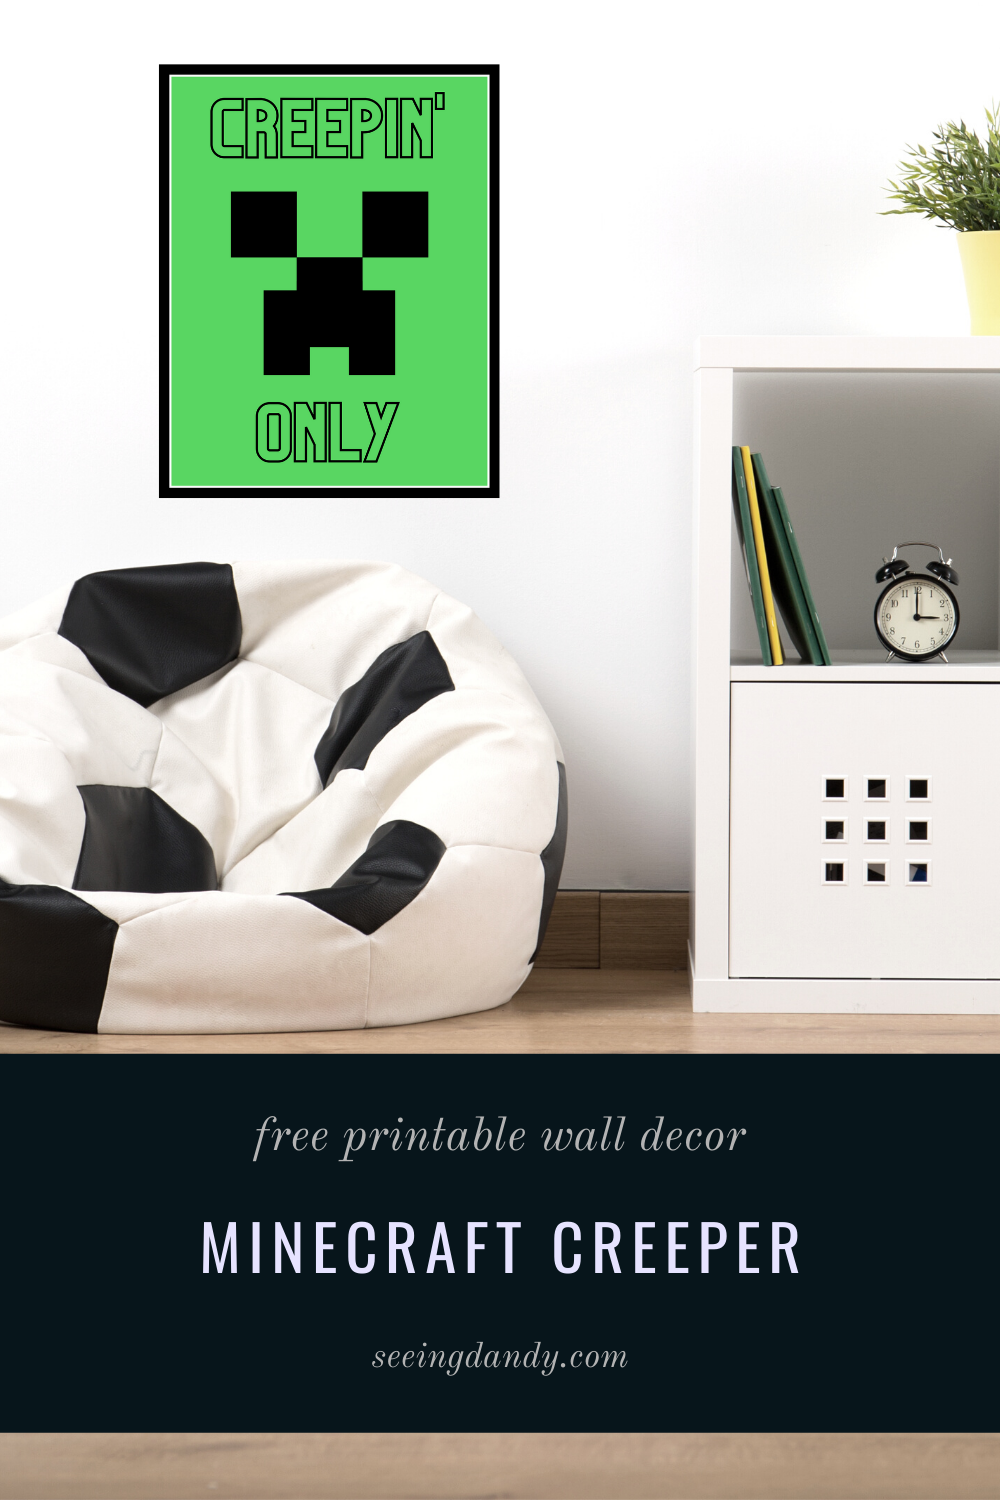 minecraft creeper printable, minecraft bedroom decor, minecraft poster, creepin only, free printable wall print, minecraft decorations, boys room, video gaming room, soccer bean bag chair, kids bedroom decorating, minecraft decor ideas